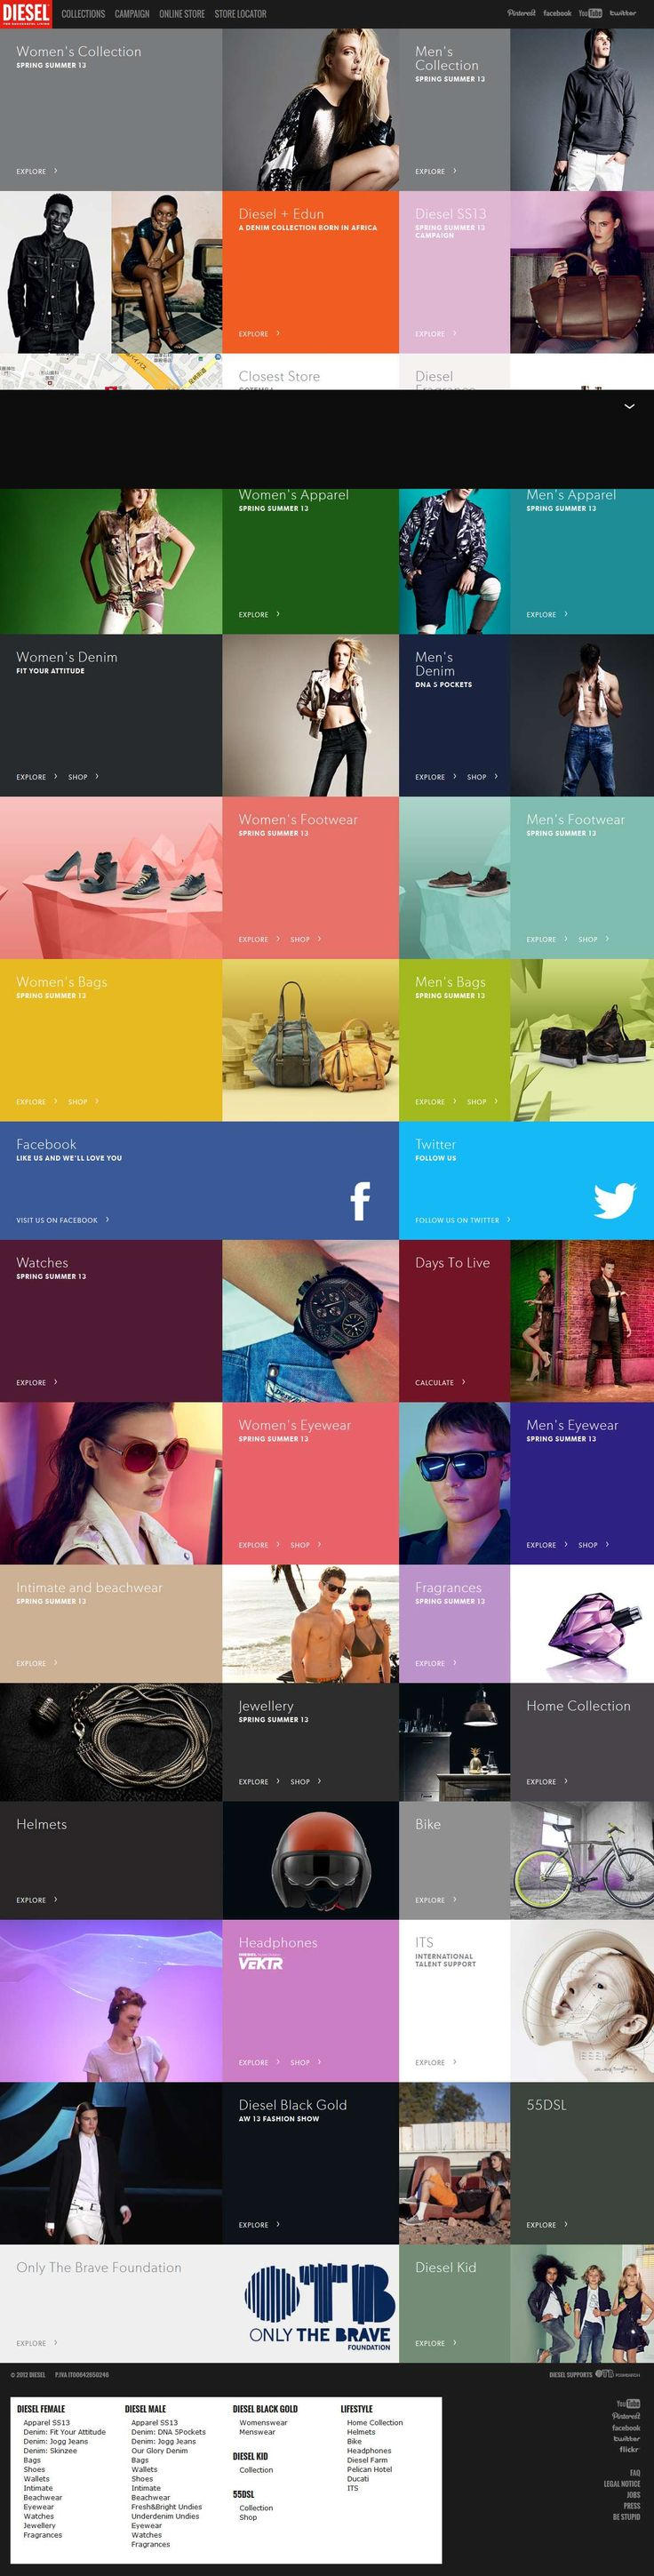 Weekly Web Design Inspiration #26